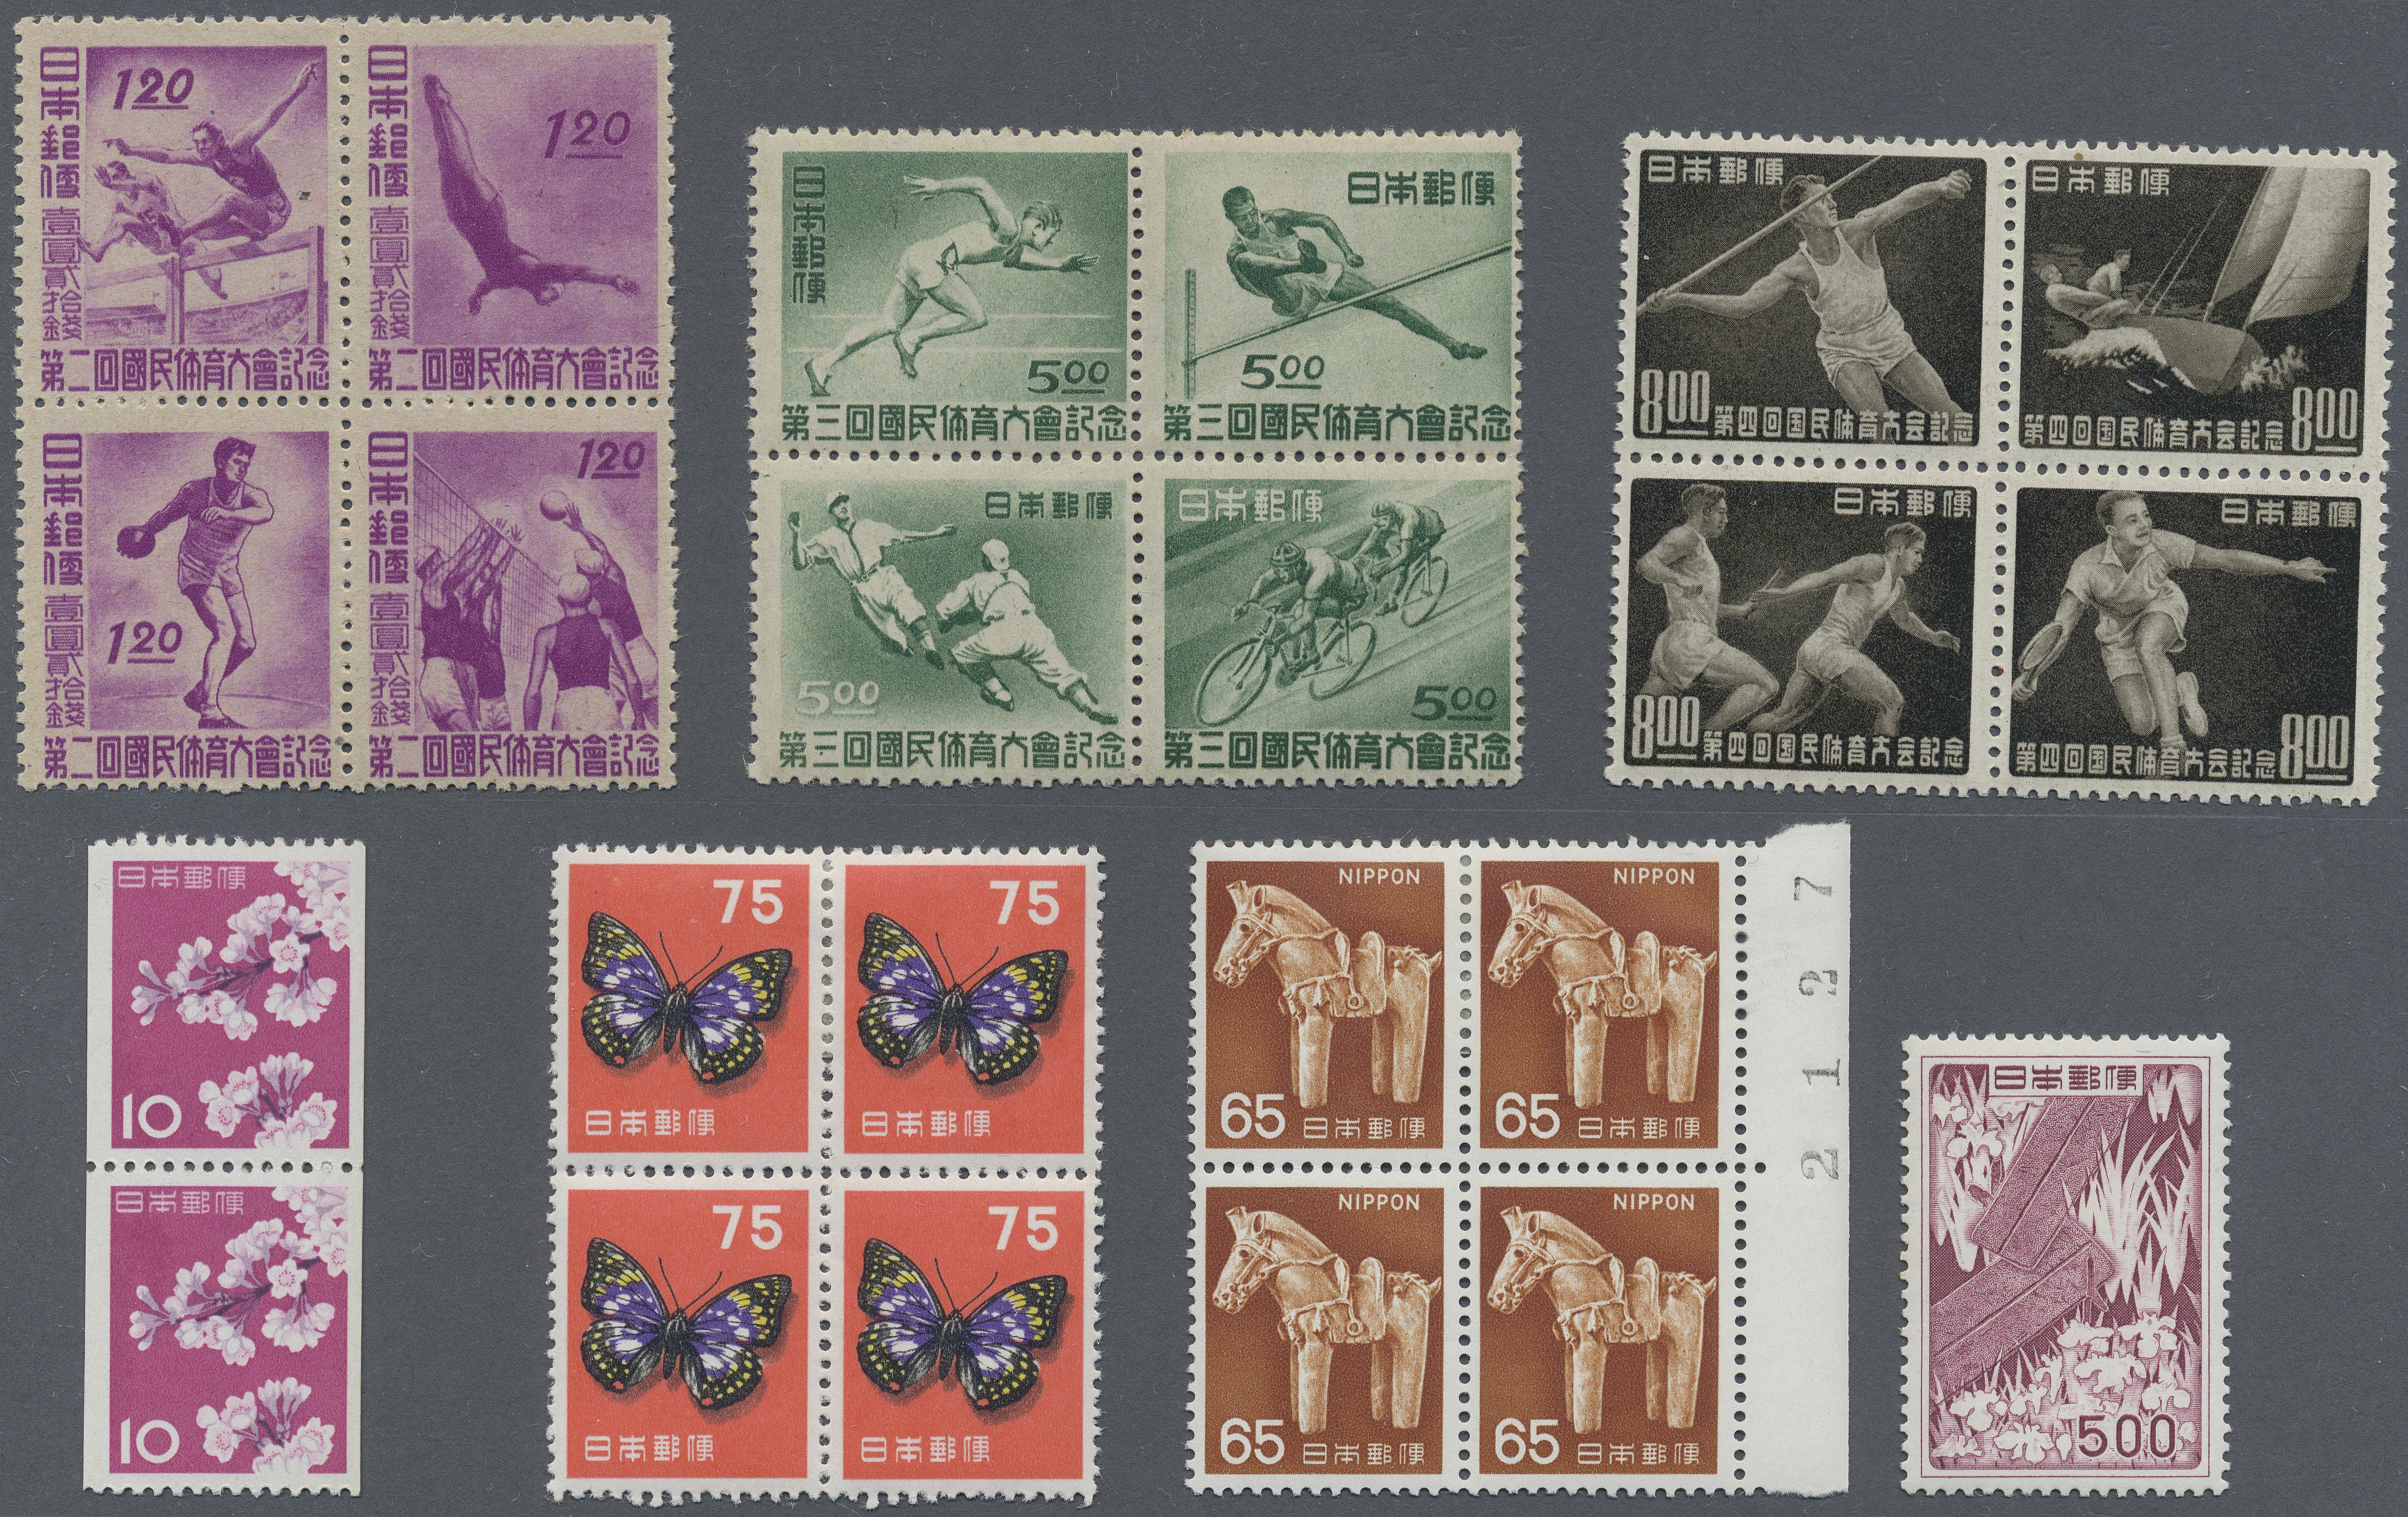 Lot 34538 - Japan  -  Auktionshaus Christoph Gärtner GmbH & Co. KG Collections Germany,  Collections Supplement, Surprise boxes #39 Day 7